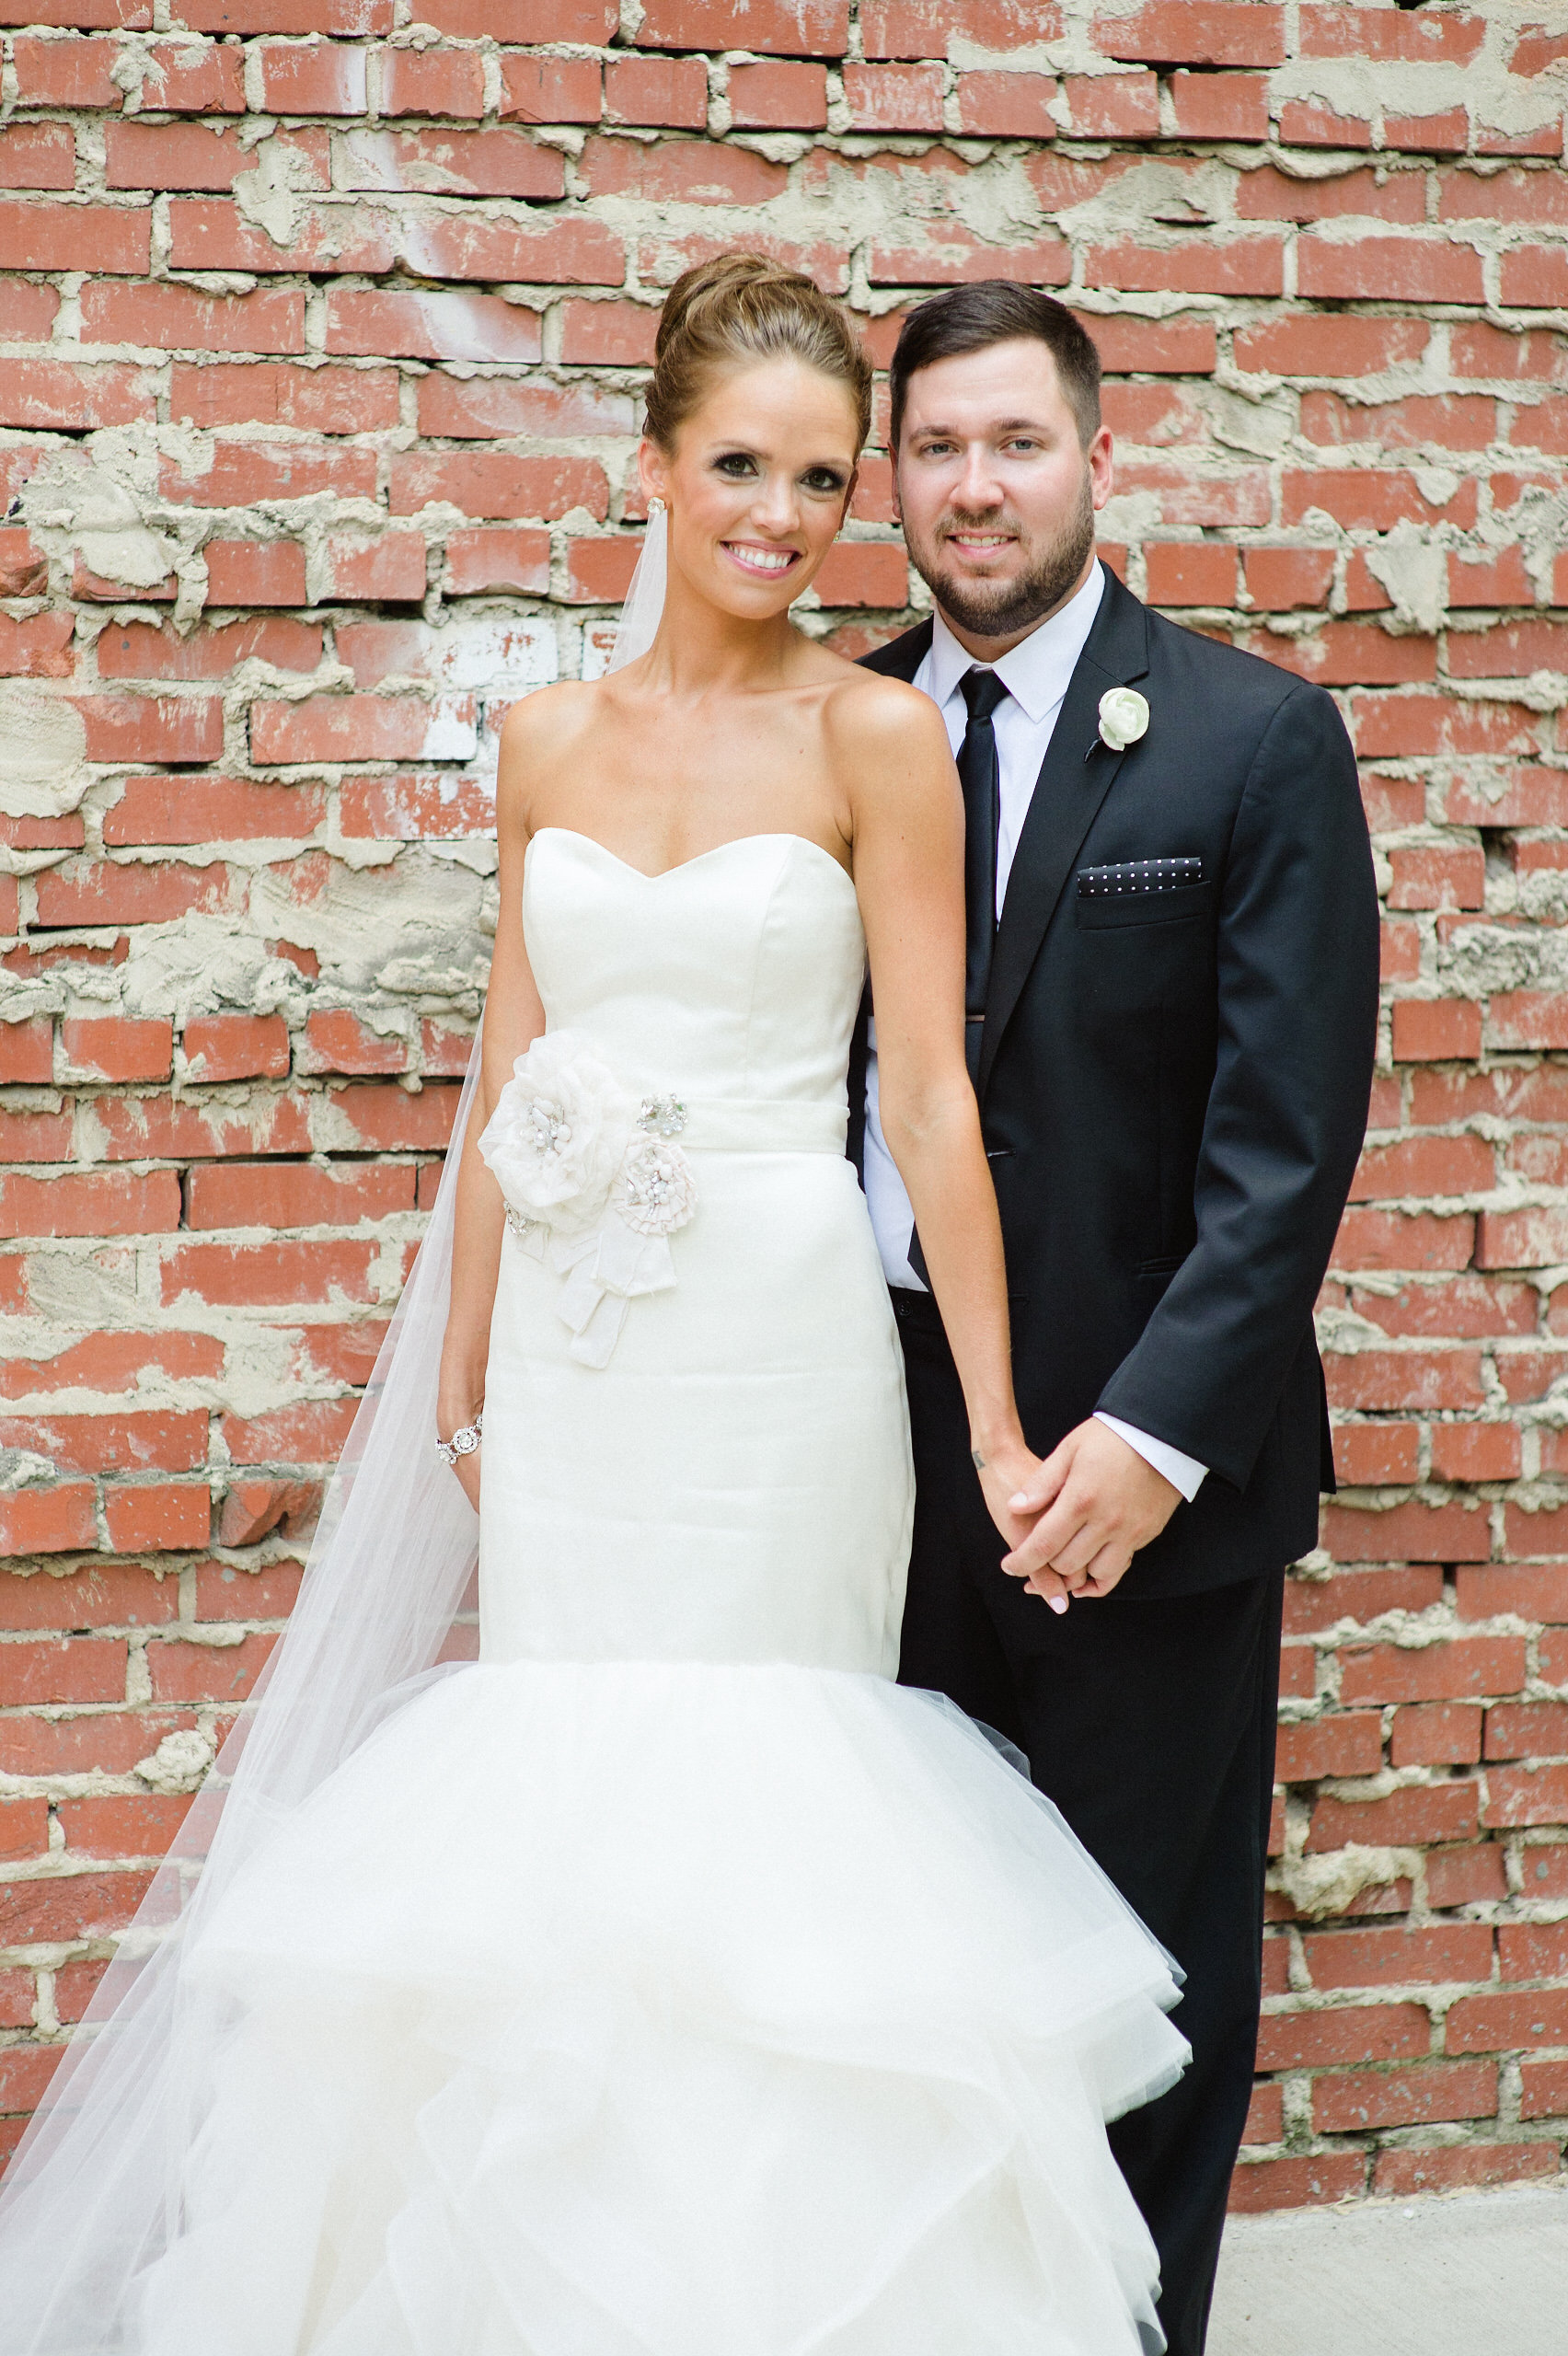 Foundation For The Carolinas Wedding - The Graceful Host - Charlotte, NC Wedding